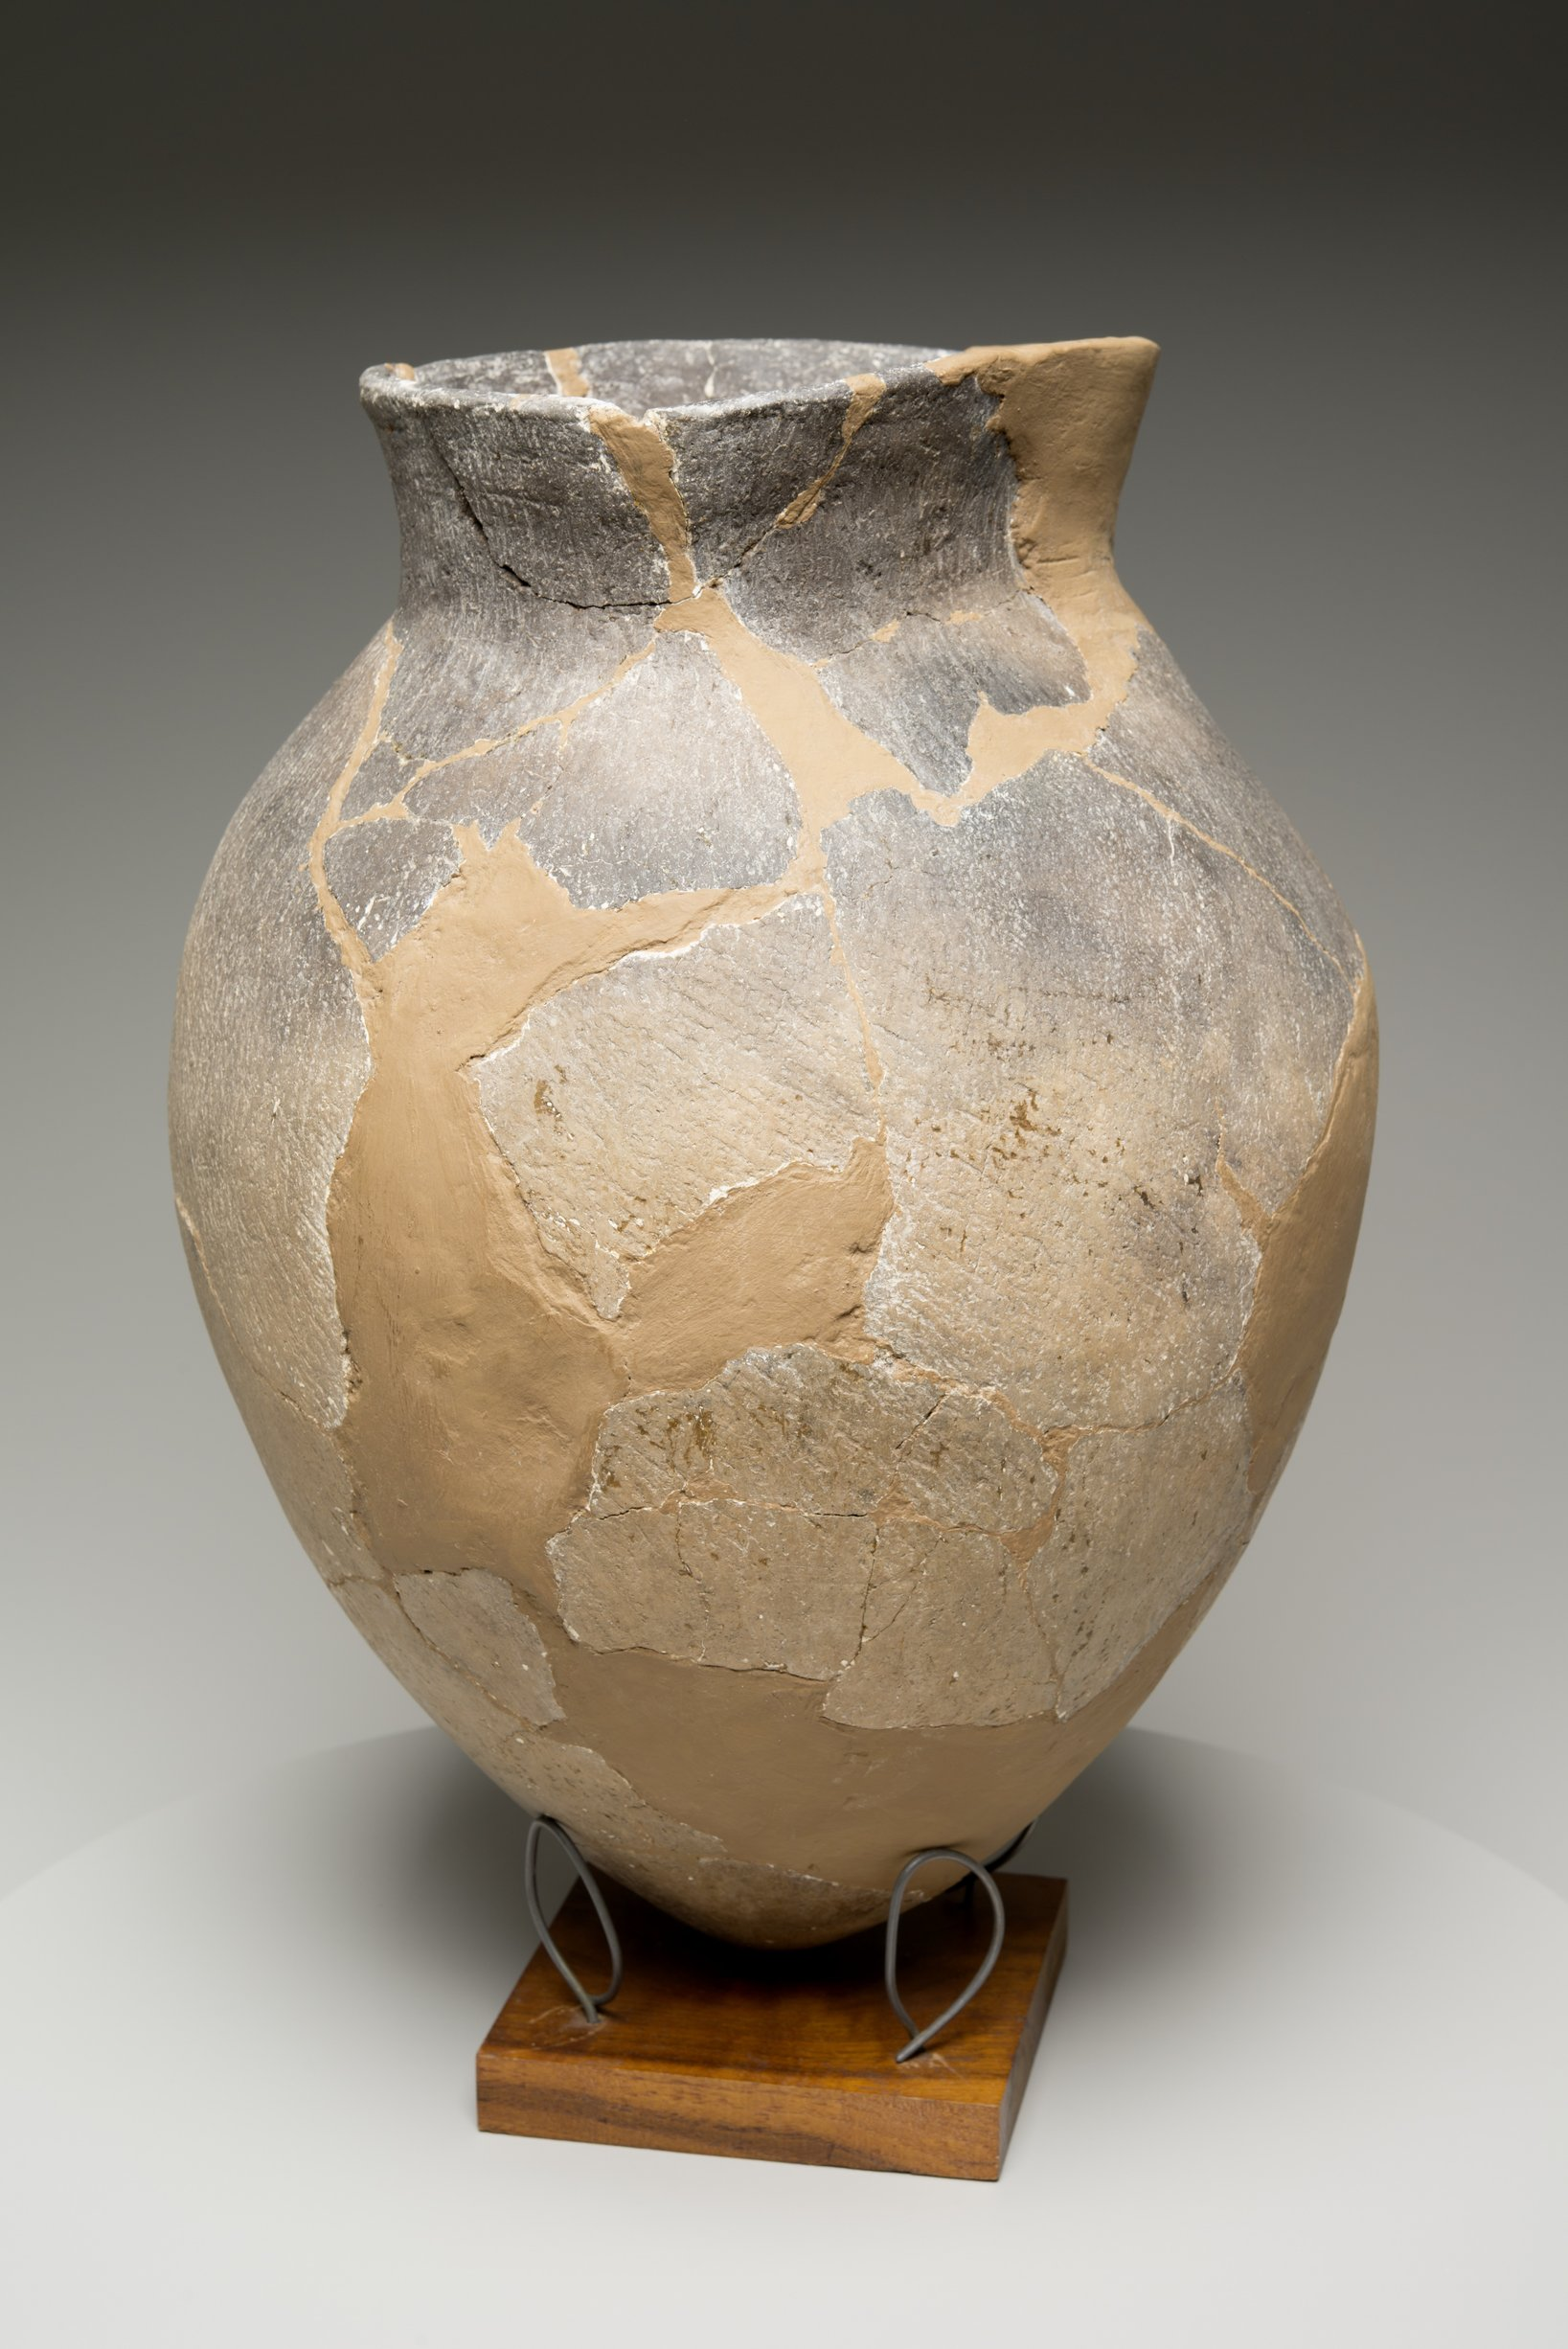 Grasshopper Falls phase Early Ceramic Vessel From the Booth Site, 14JN349 - 11